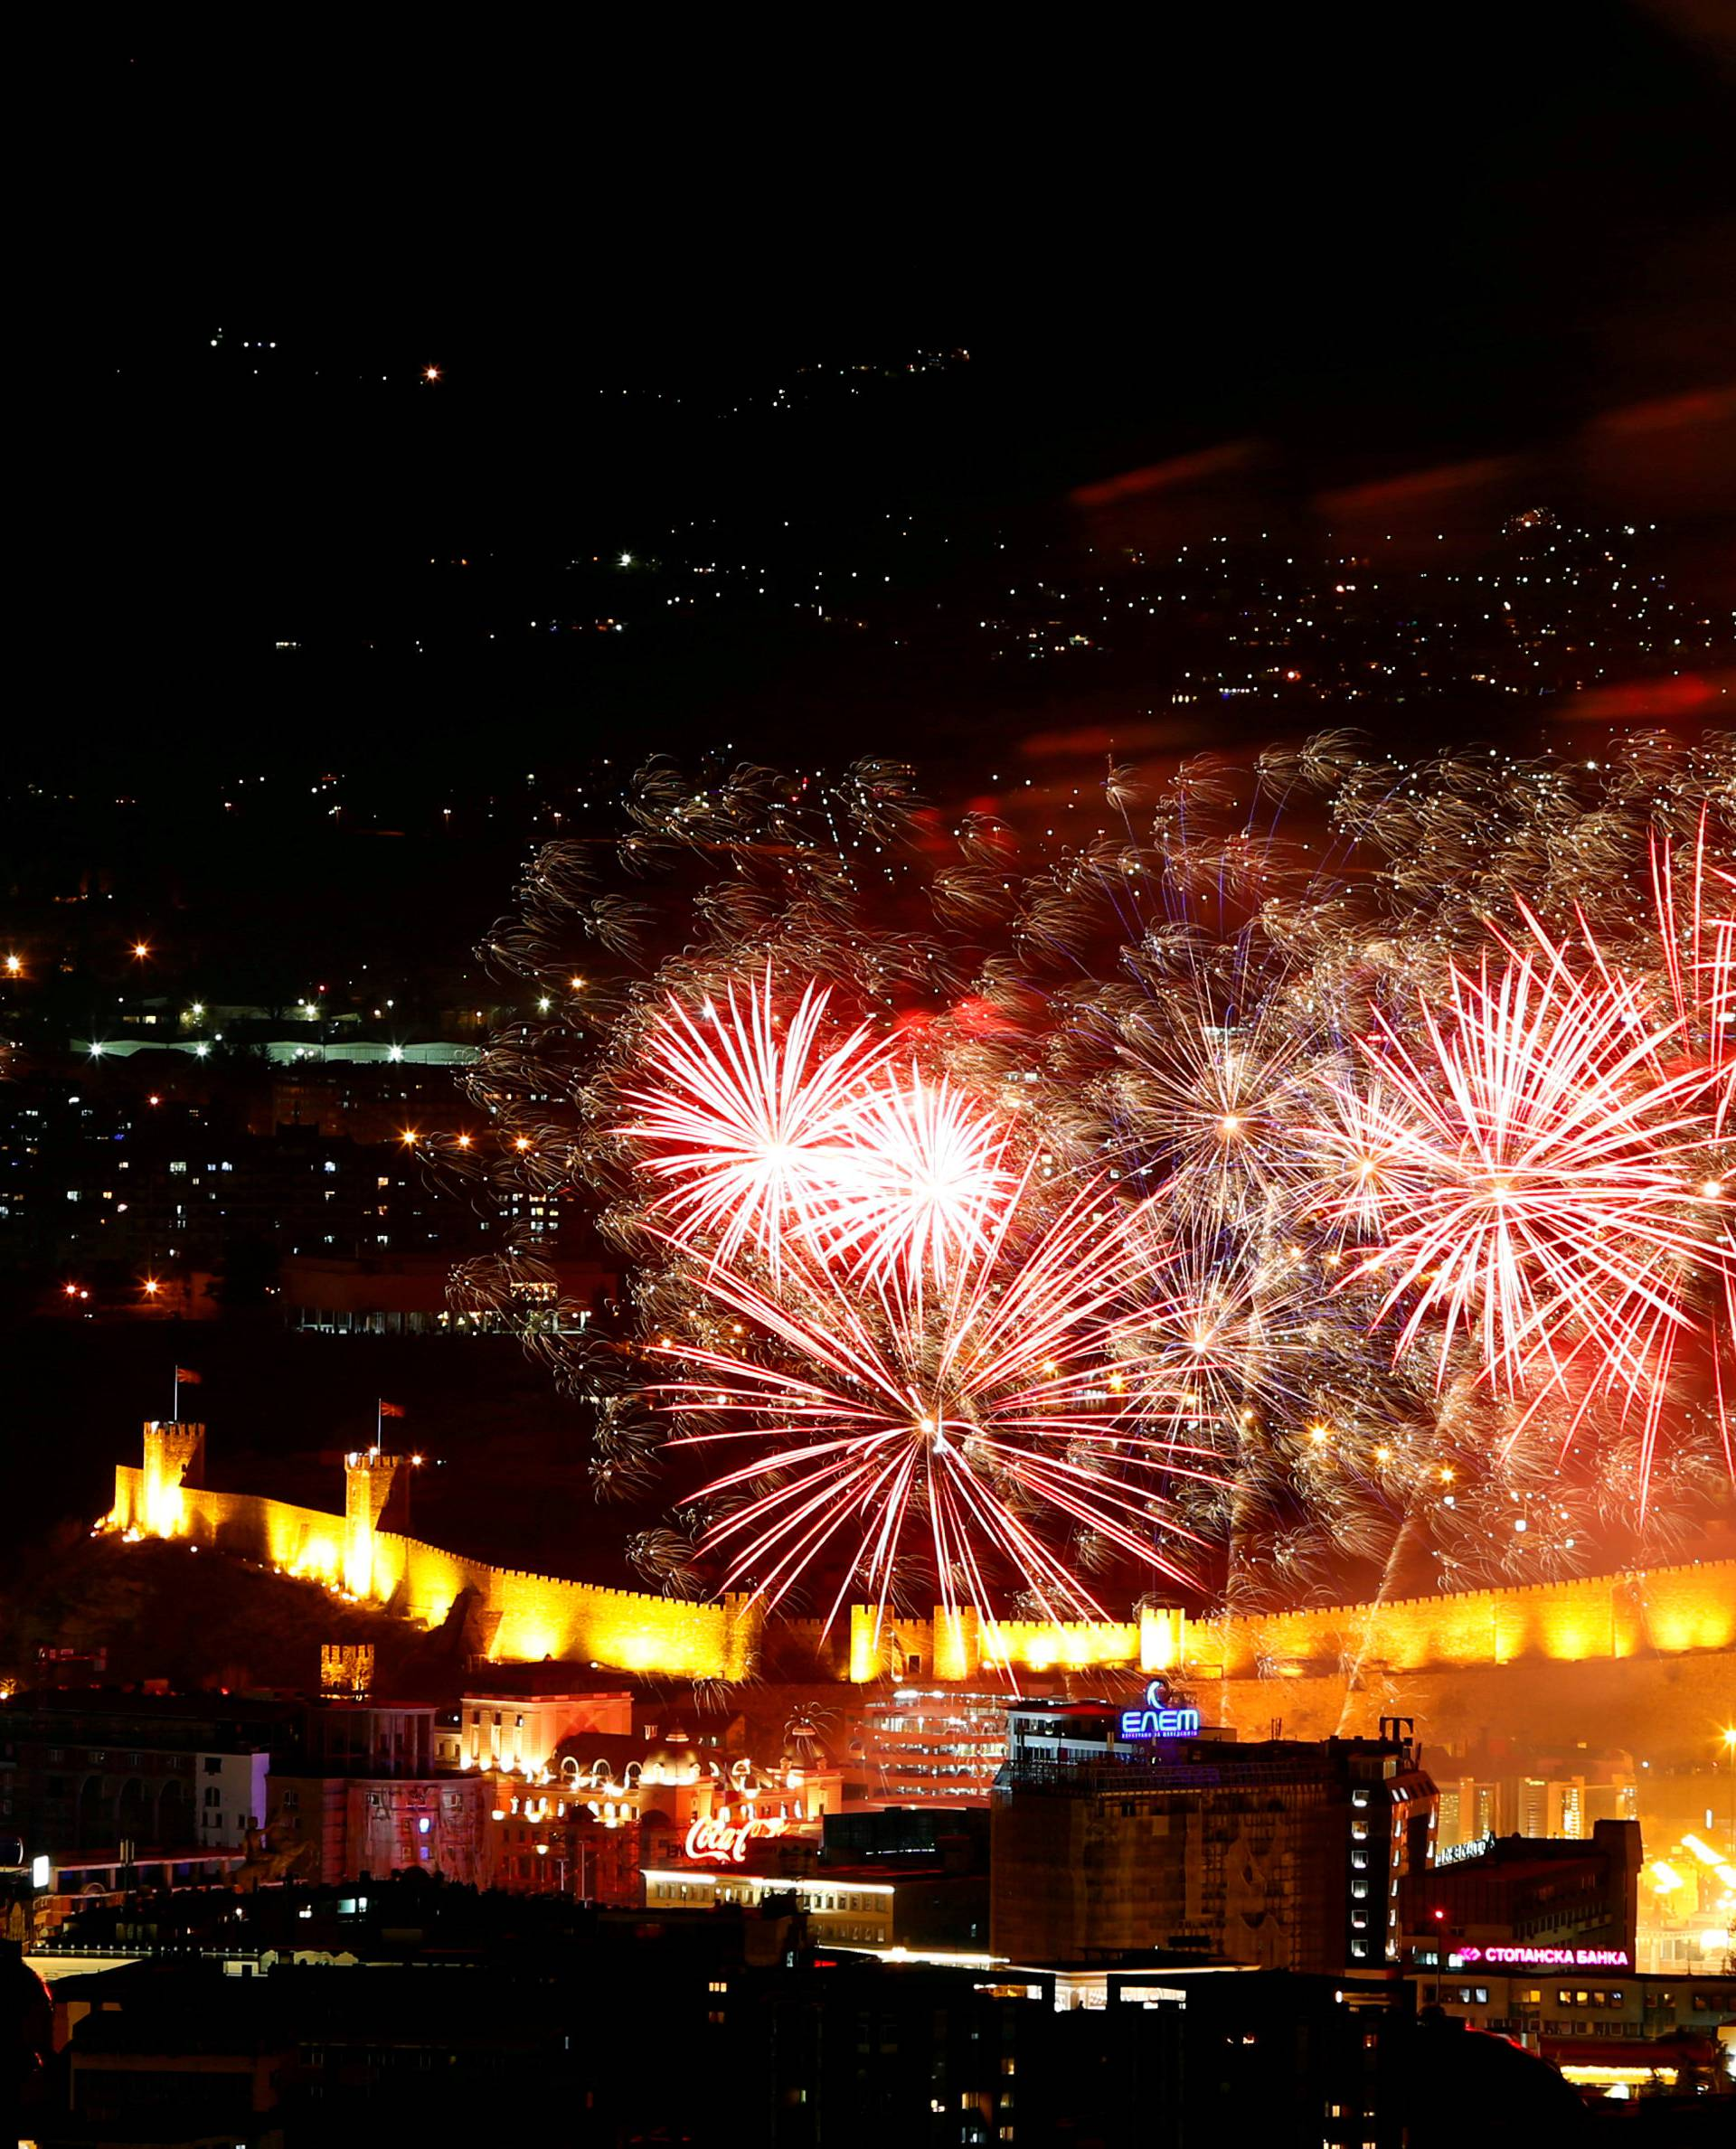 Fireworks explode over Skopje during the New Year celebrations